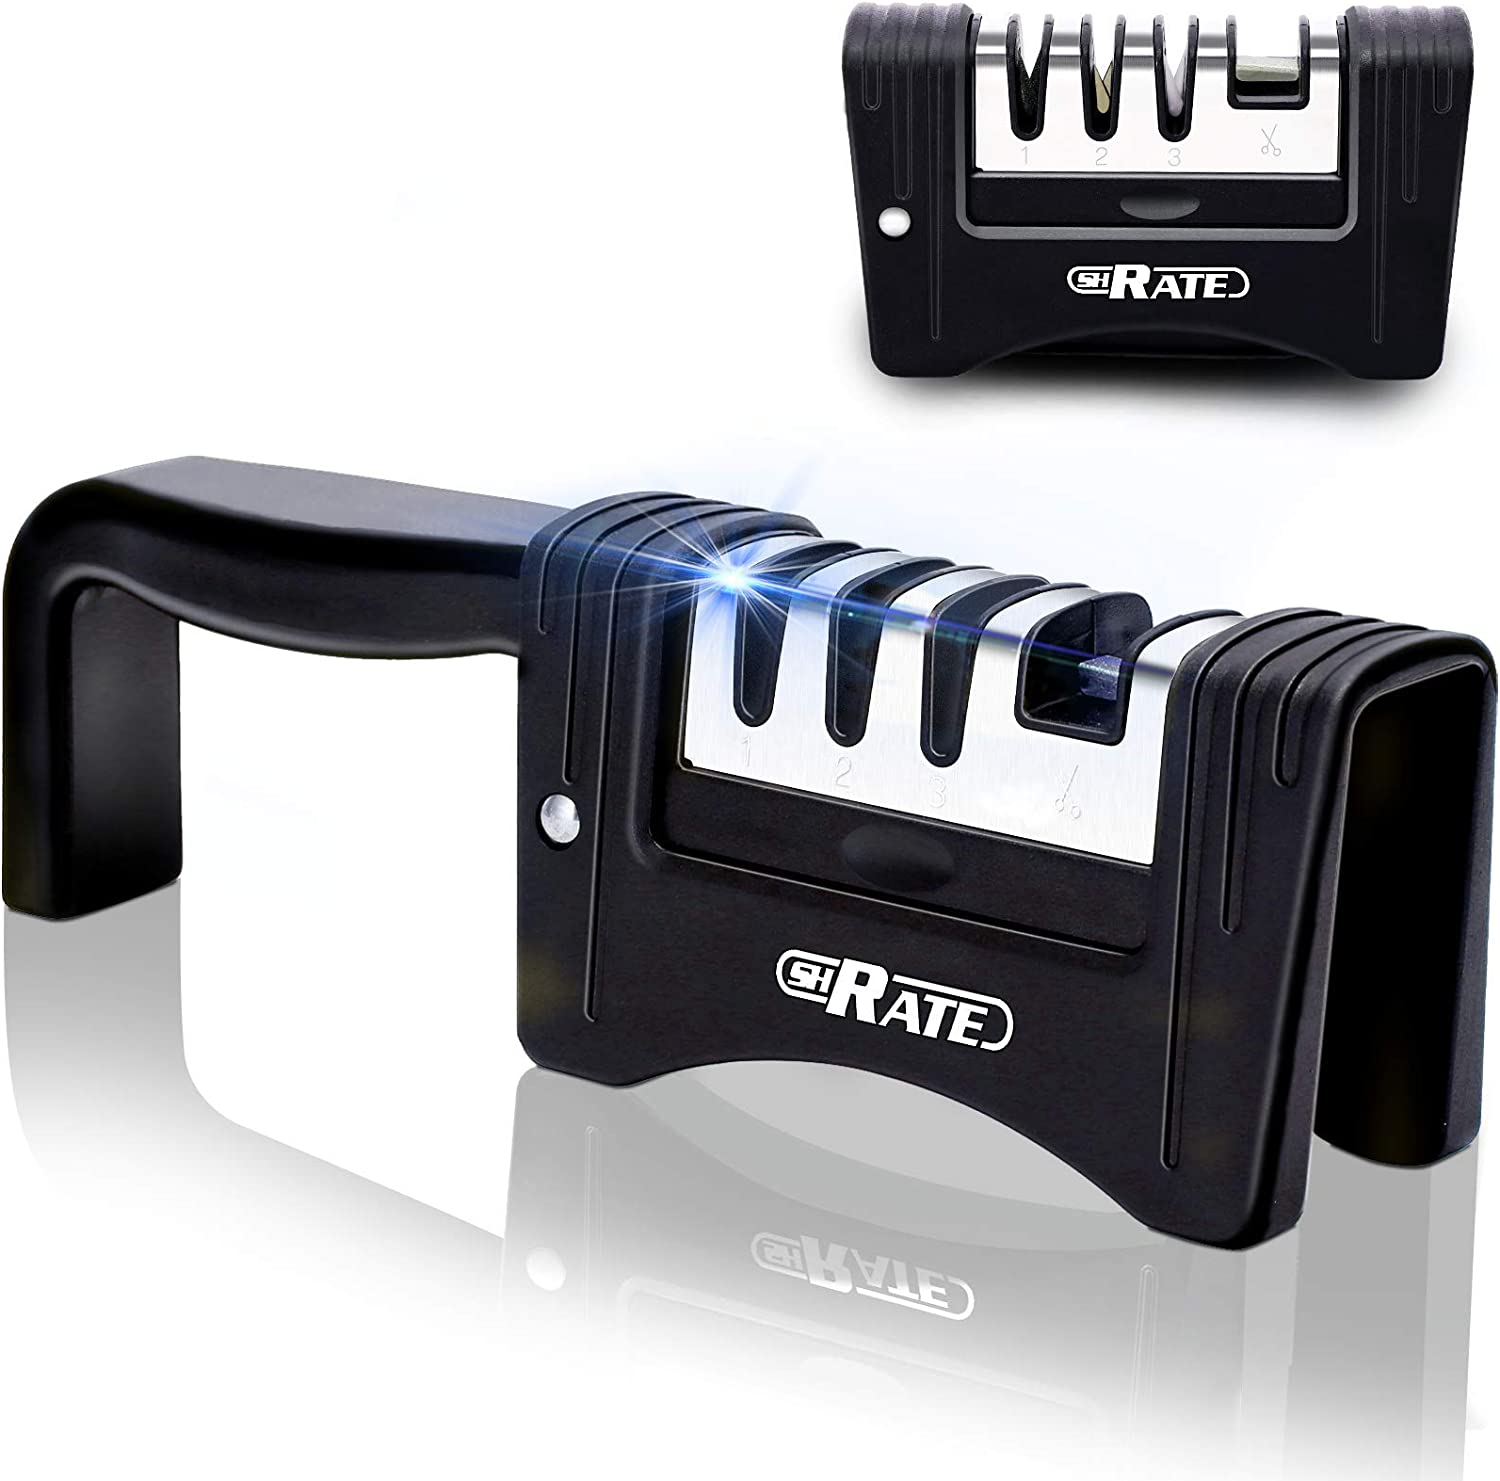 SHRATE Max 52% OFF Knife Sharpener 4-in-1 Manual Accessories Foldable Seattle Mall